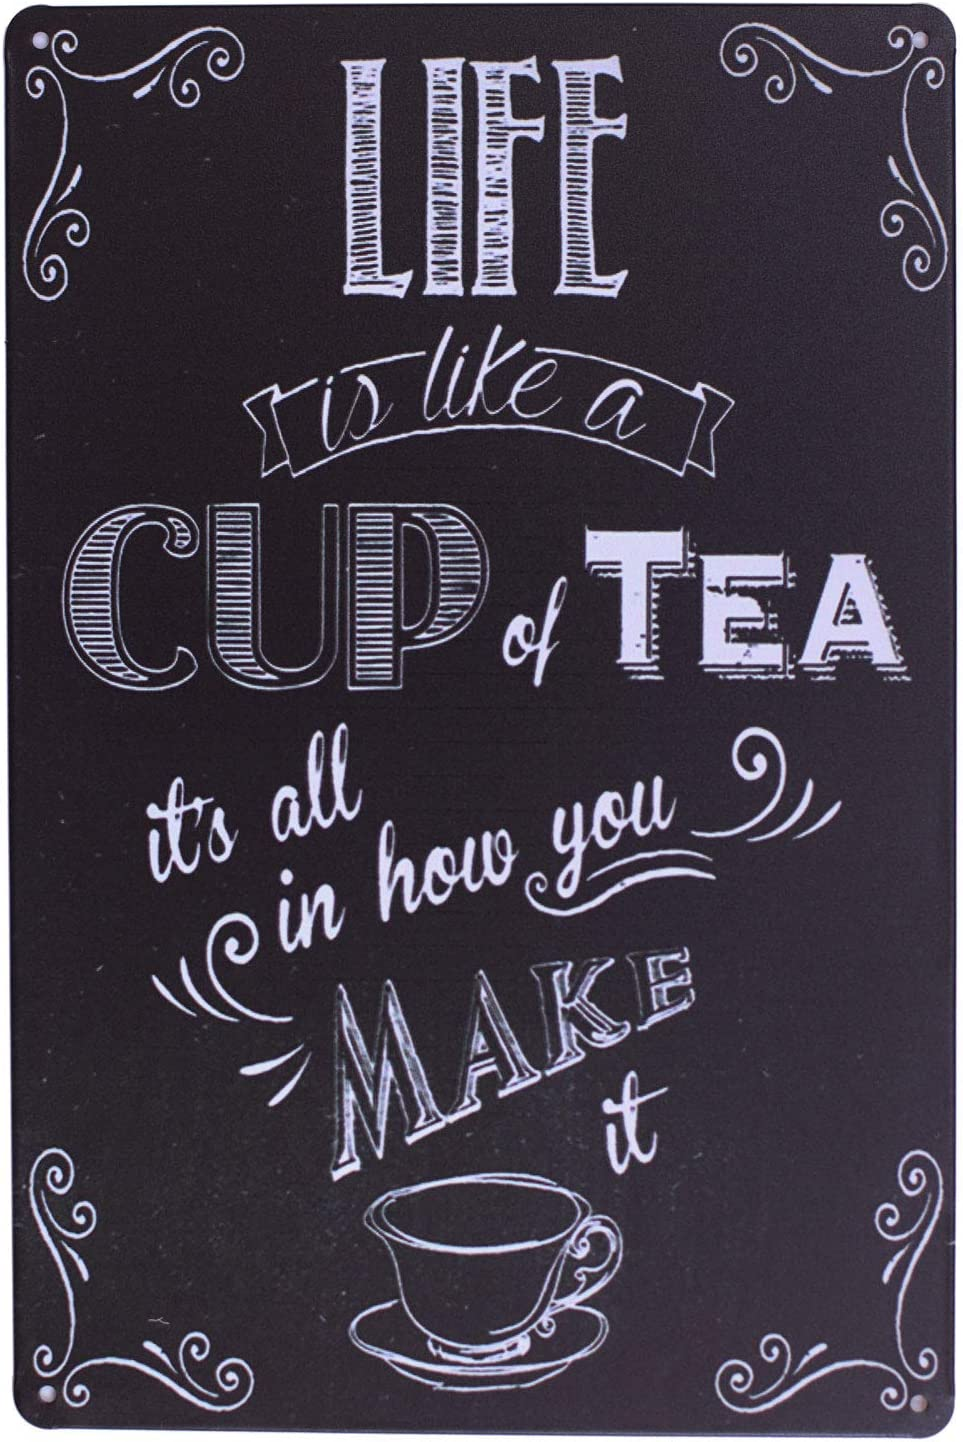 ARTCLUB Enjoy Your Life Metal Plate Sign, Life is Like a Cup of Tea Funny Saying Antique Plaque Vintage Poster Kitchen Living Room Wall Decor